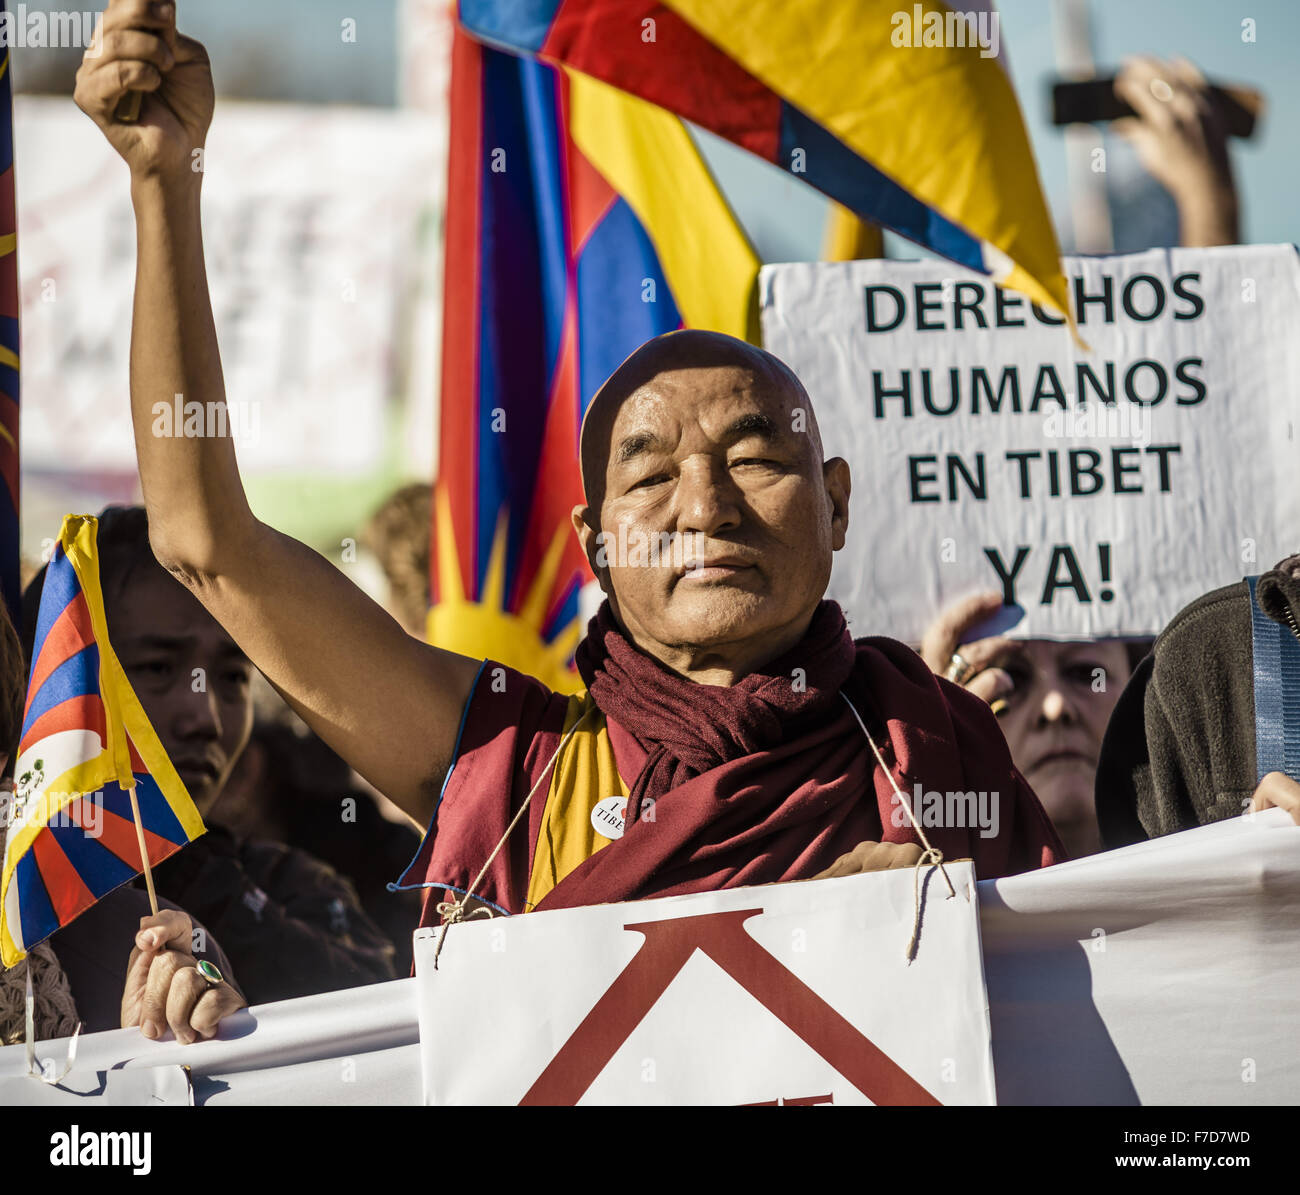 Nov. 29, 2015 - Barcelona, Catalonia, Spain - THUBTEN WANGCHEN, a Buddhist monk and founder of the 'Casa Tibet' - Stock Image